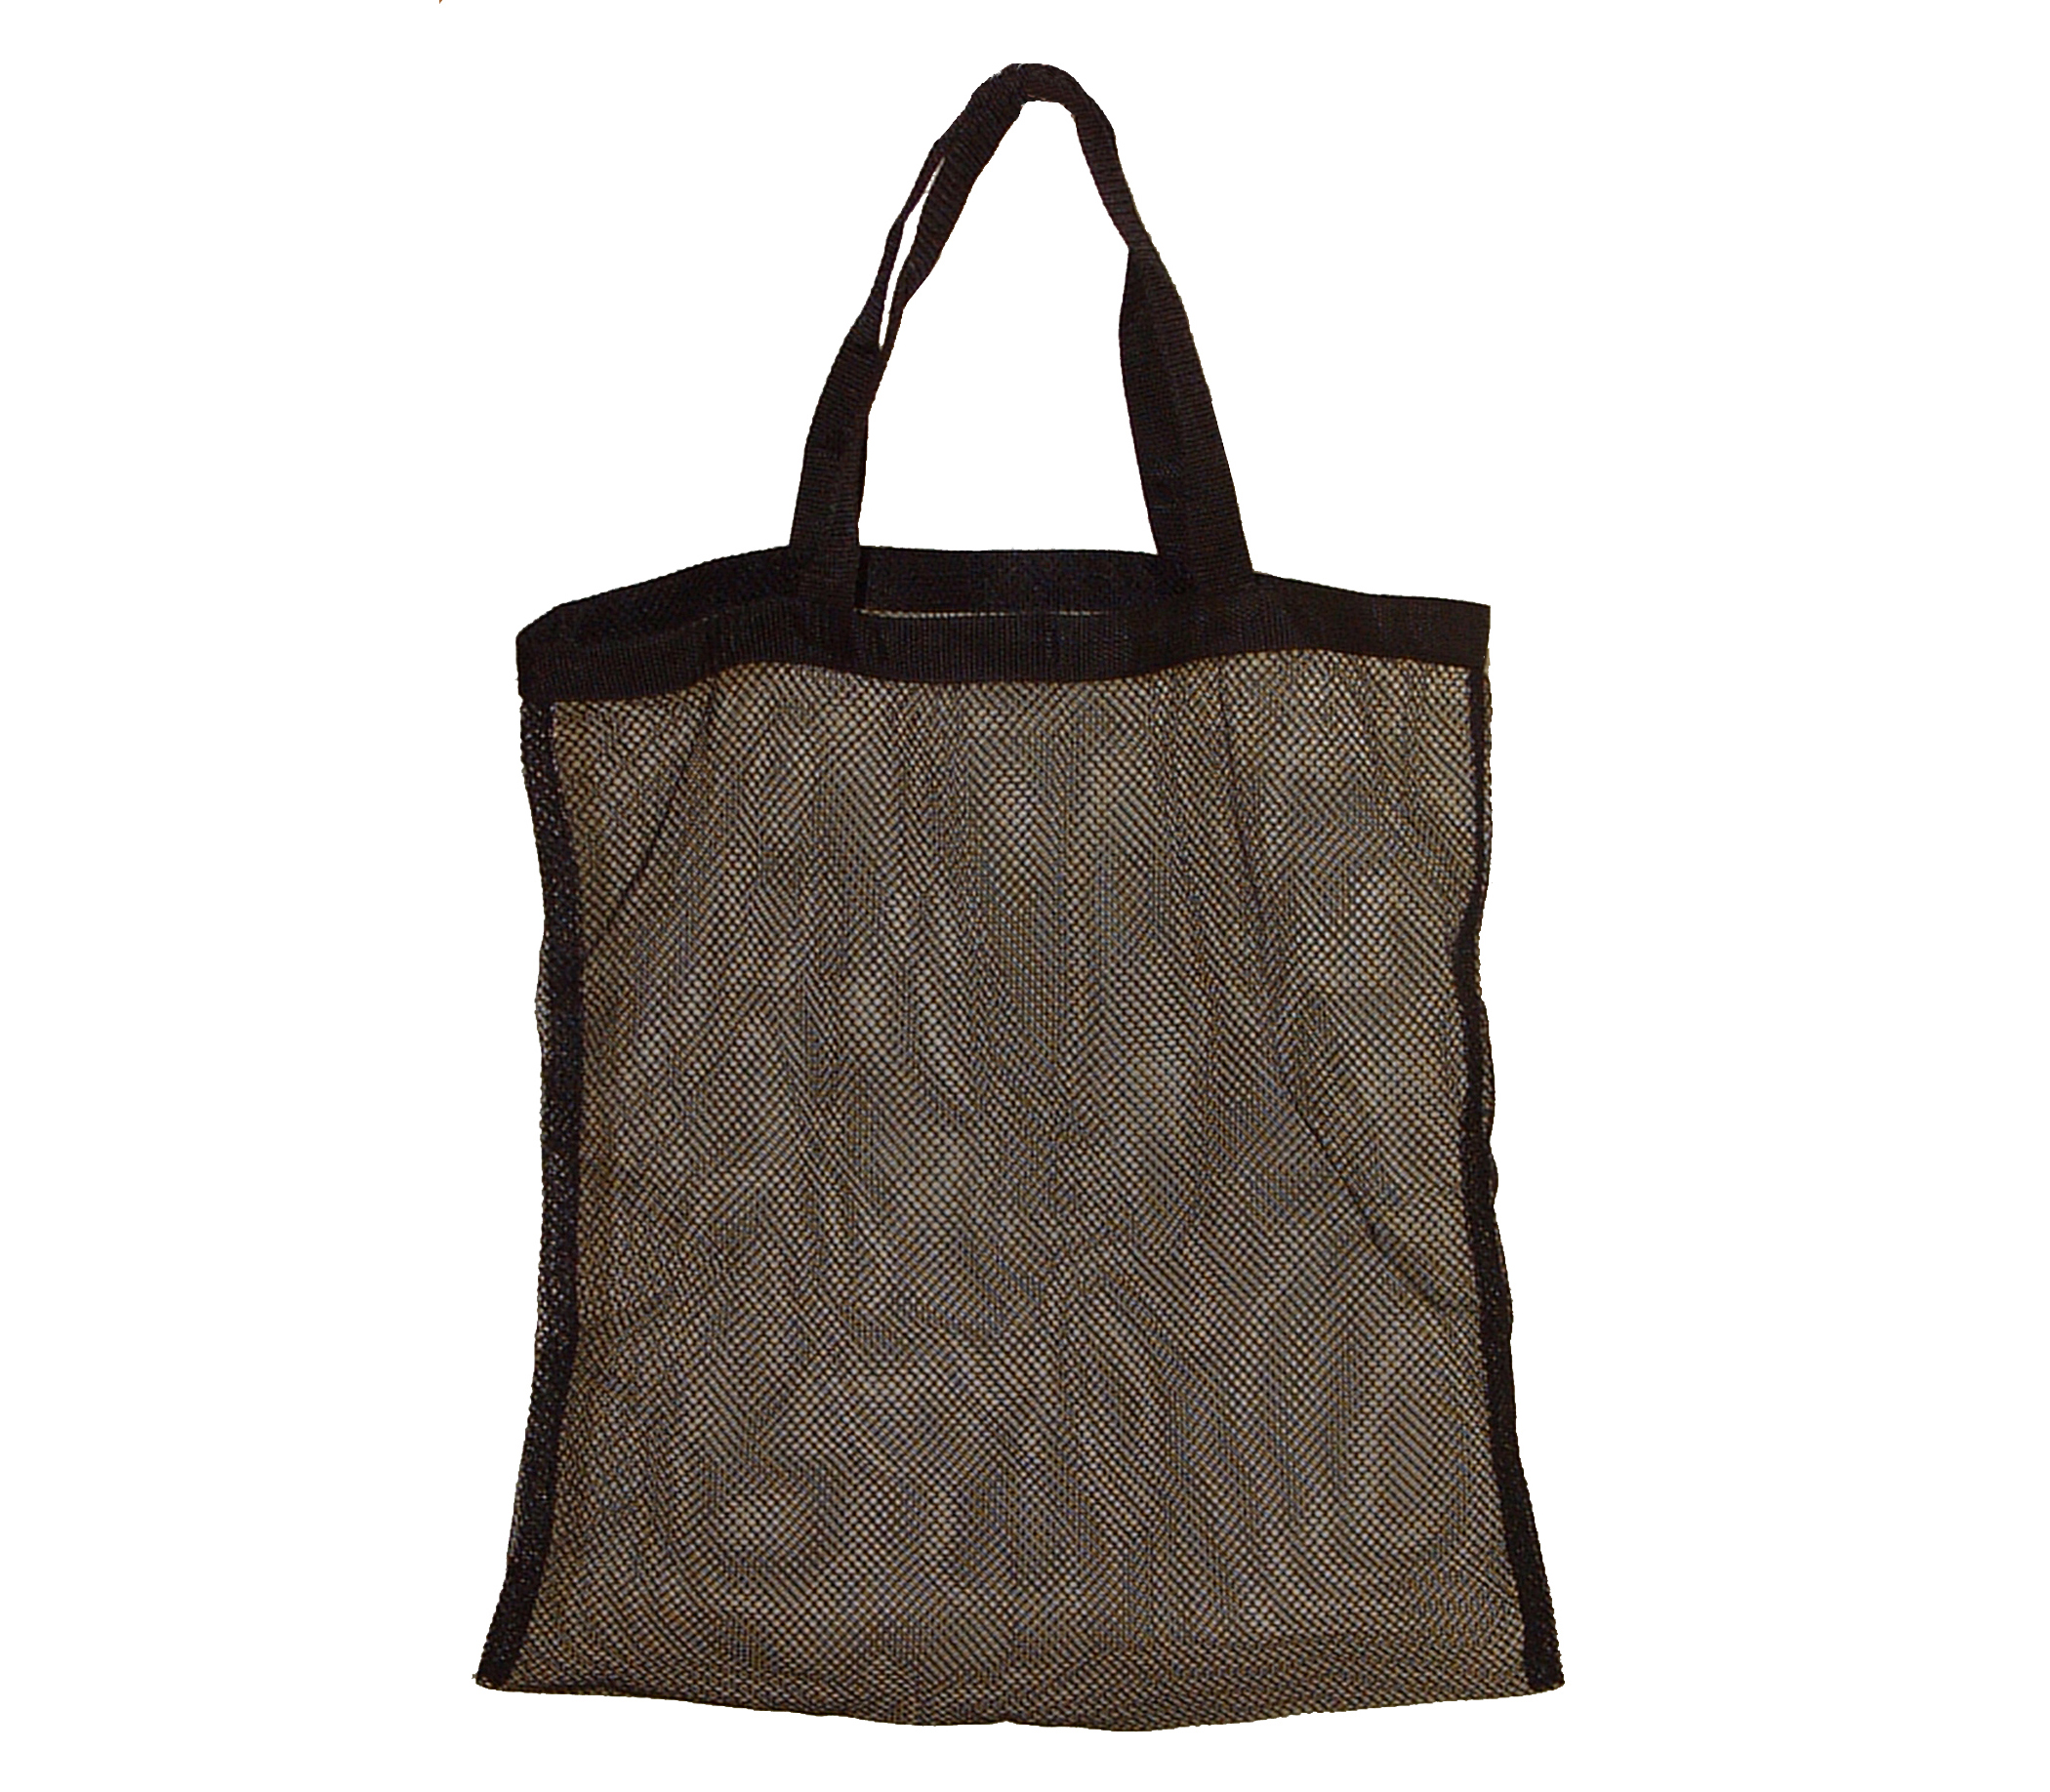 mesh caddy bag manufacturer of vacumaid central vacuum